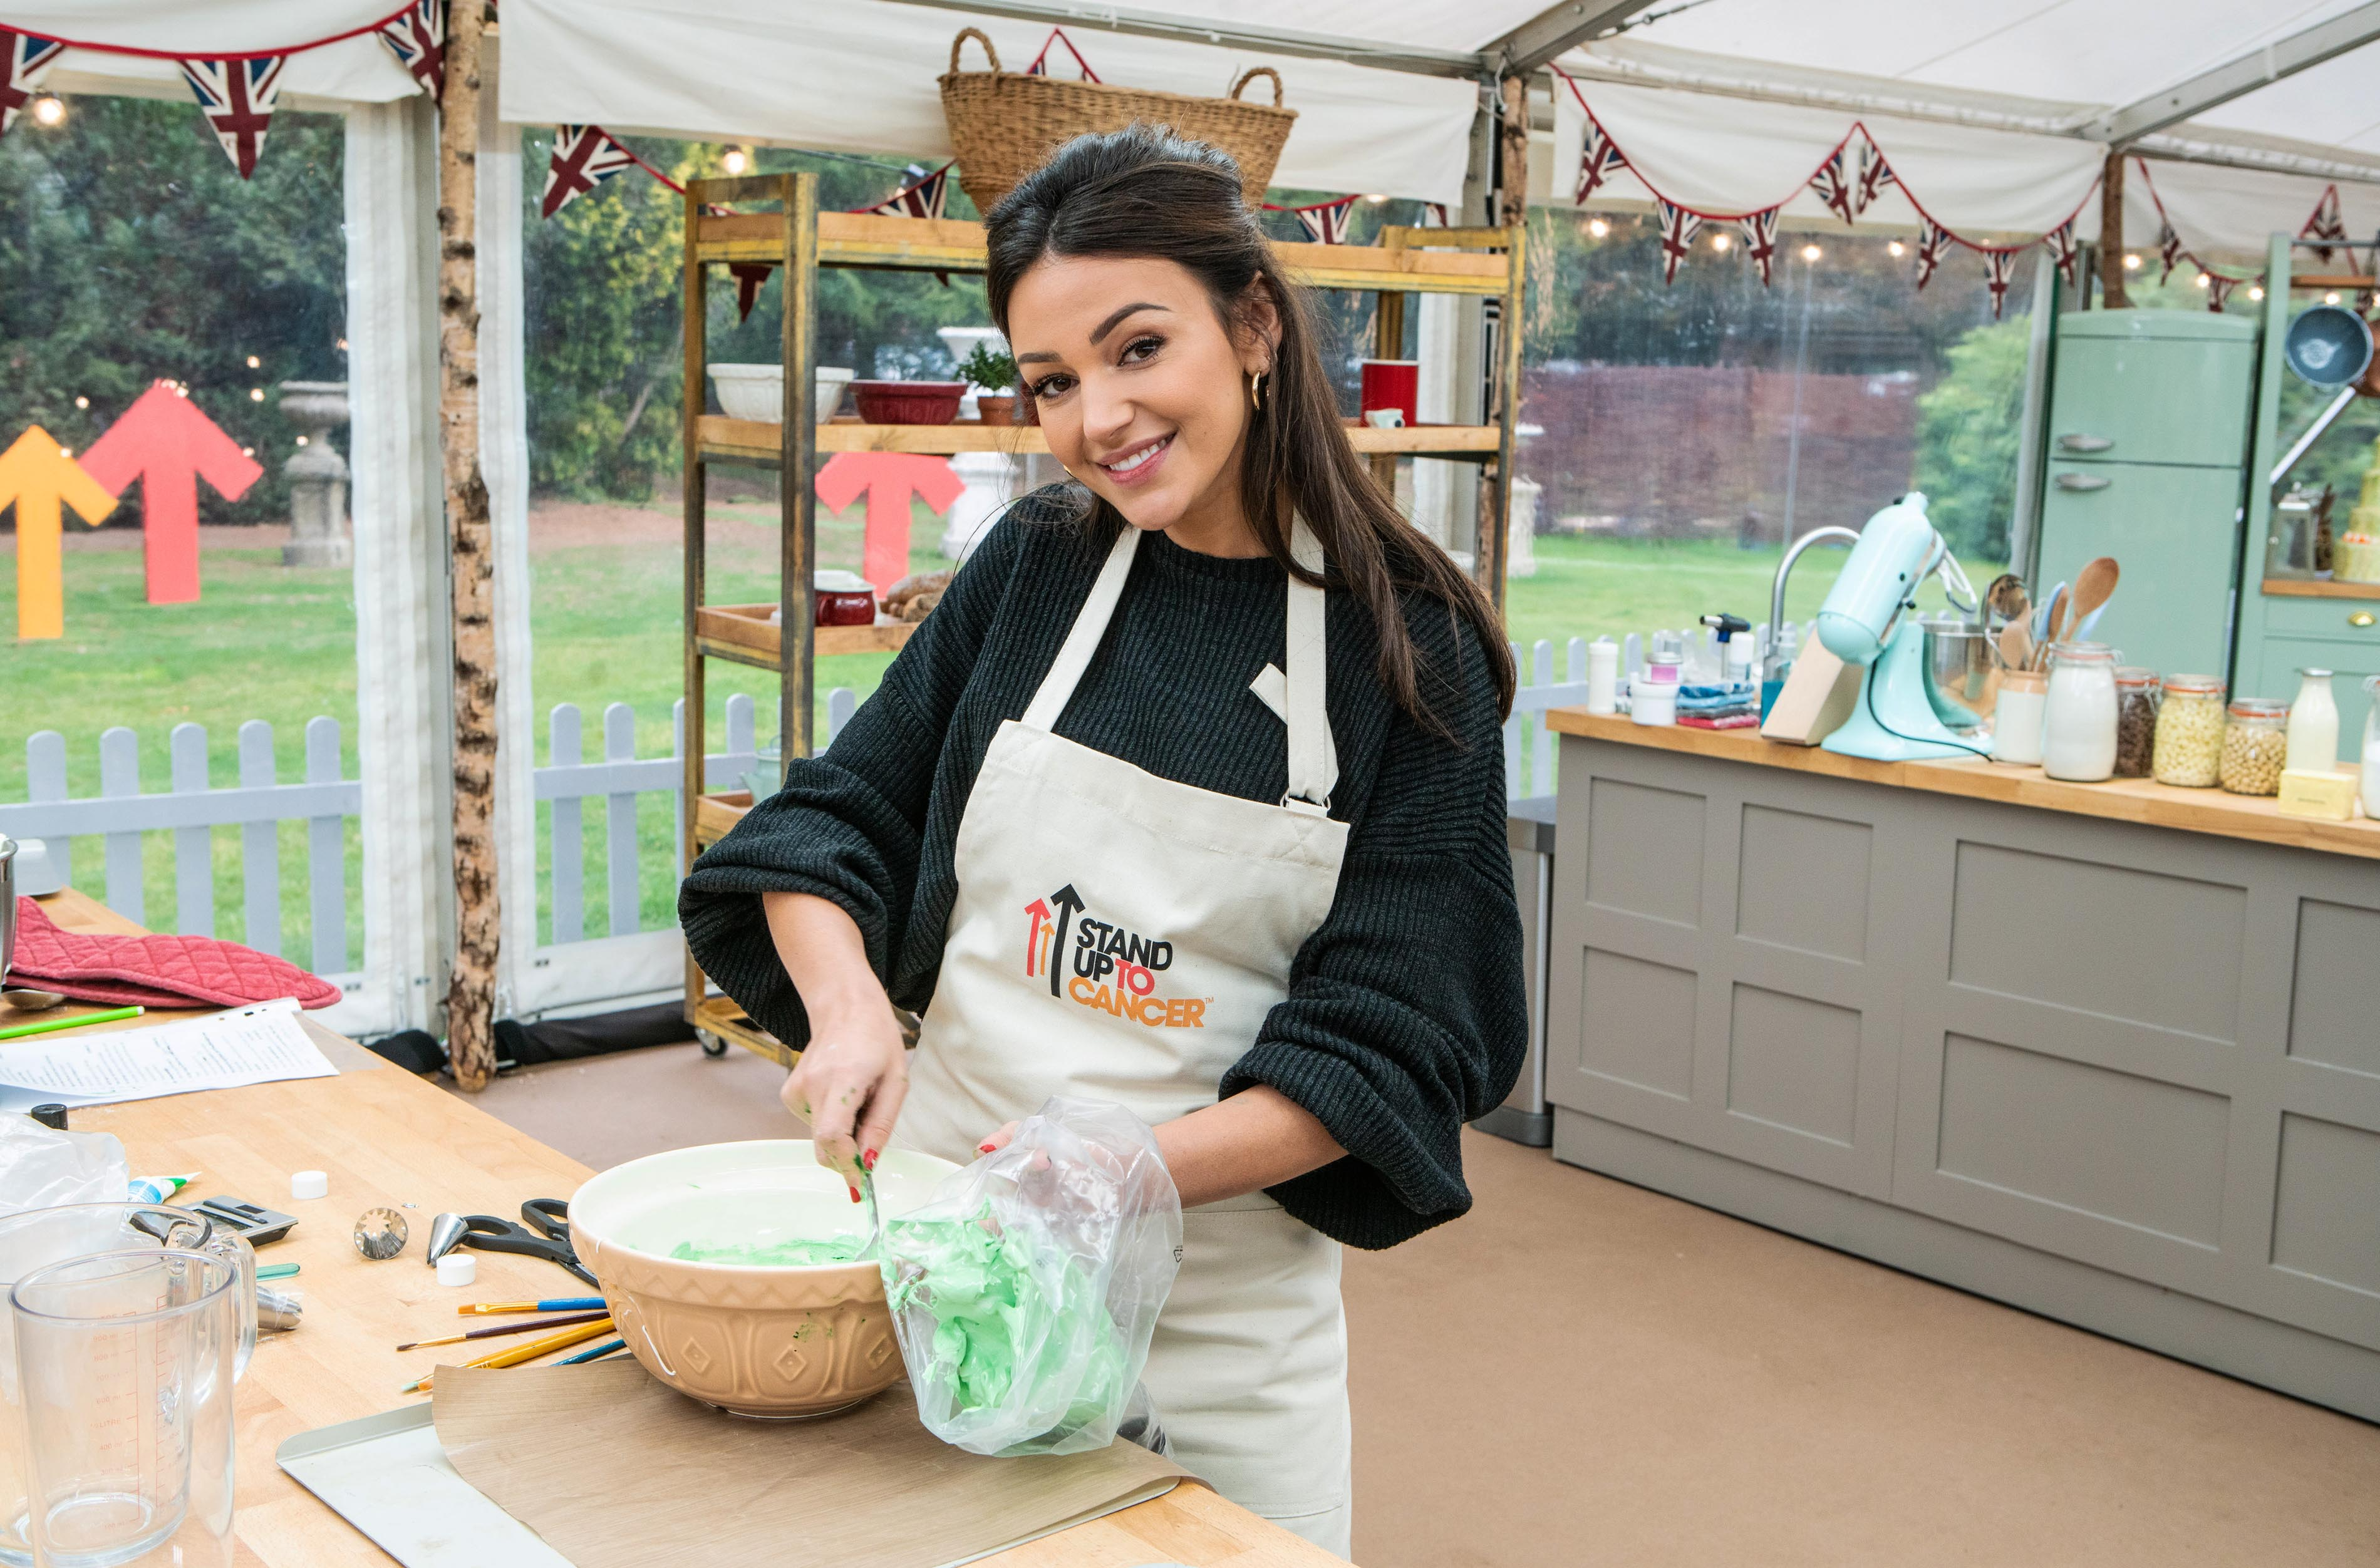 Michelle Keegan in The Great Celebrity Bake Off